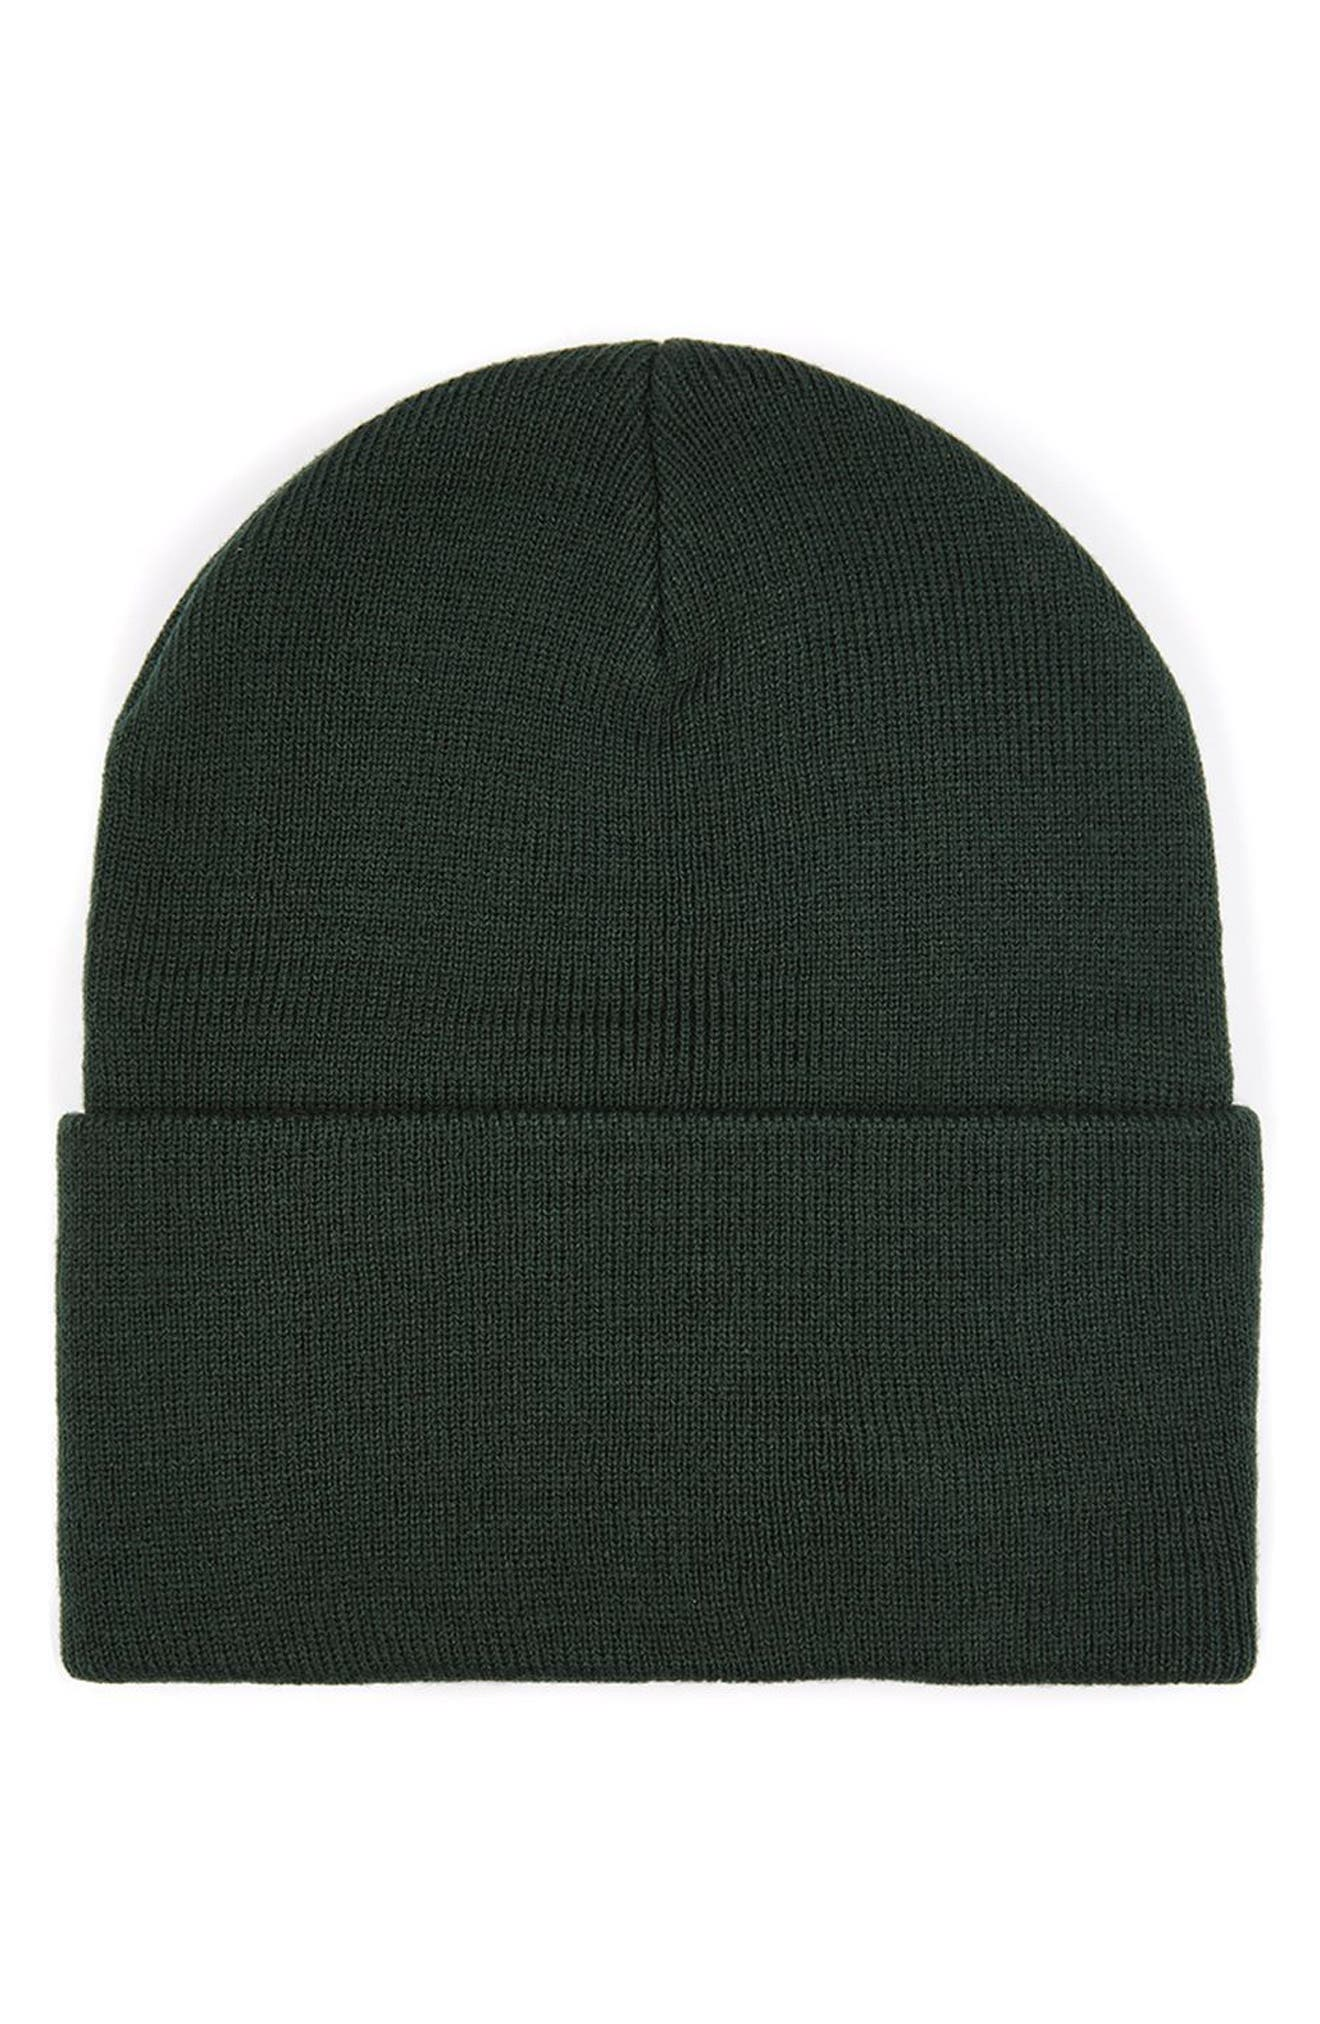 Alternate Image 1 Selected - Topman Sports Skater Beanie